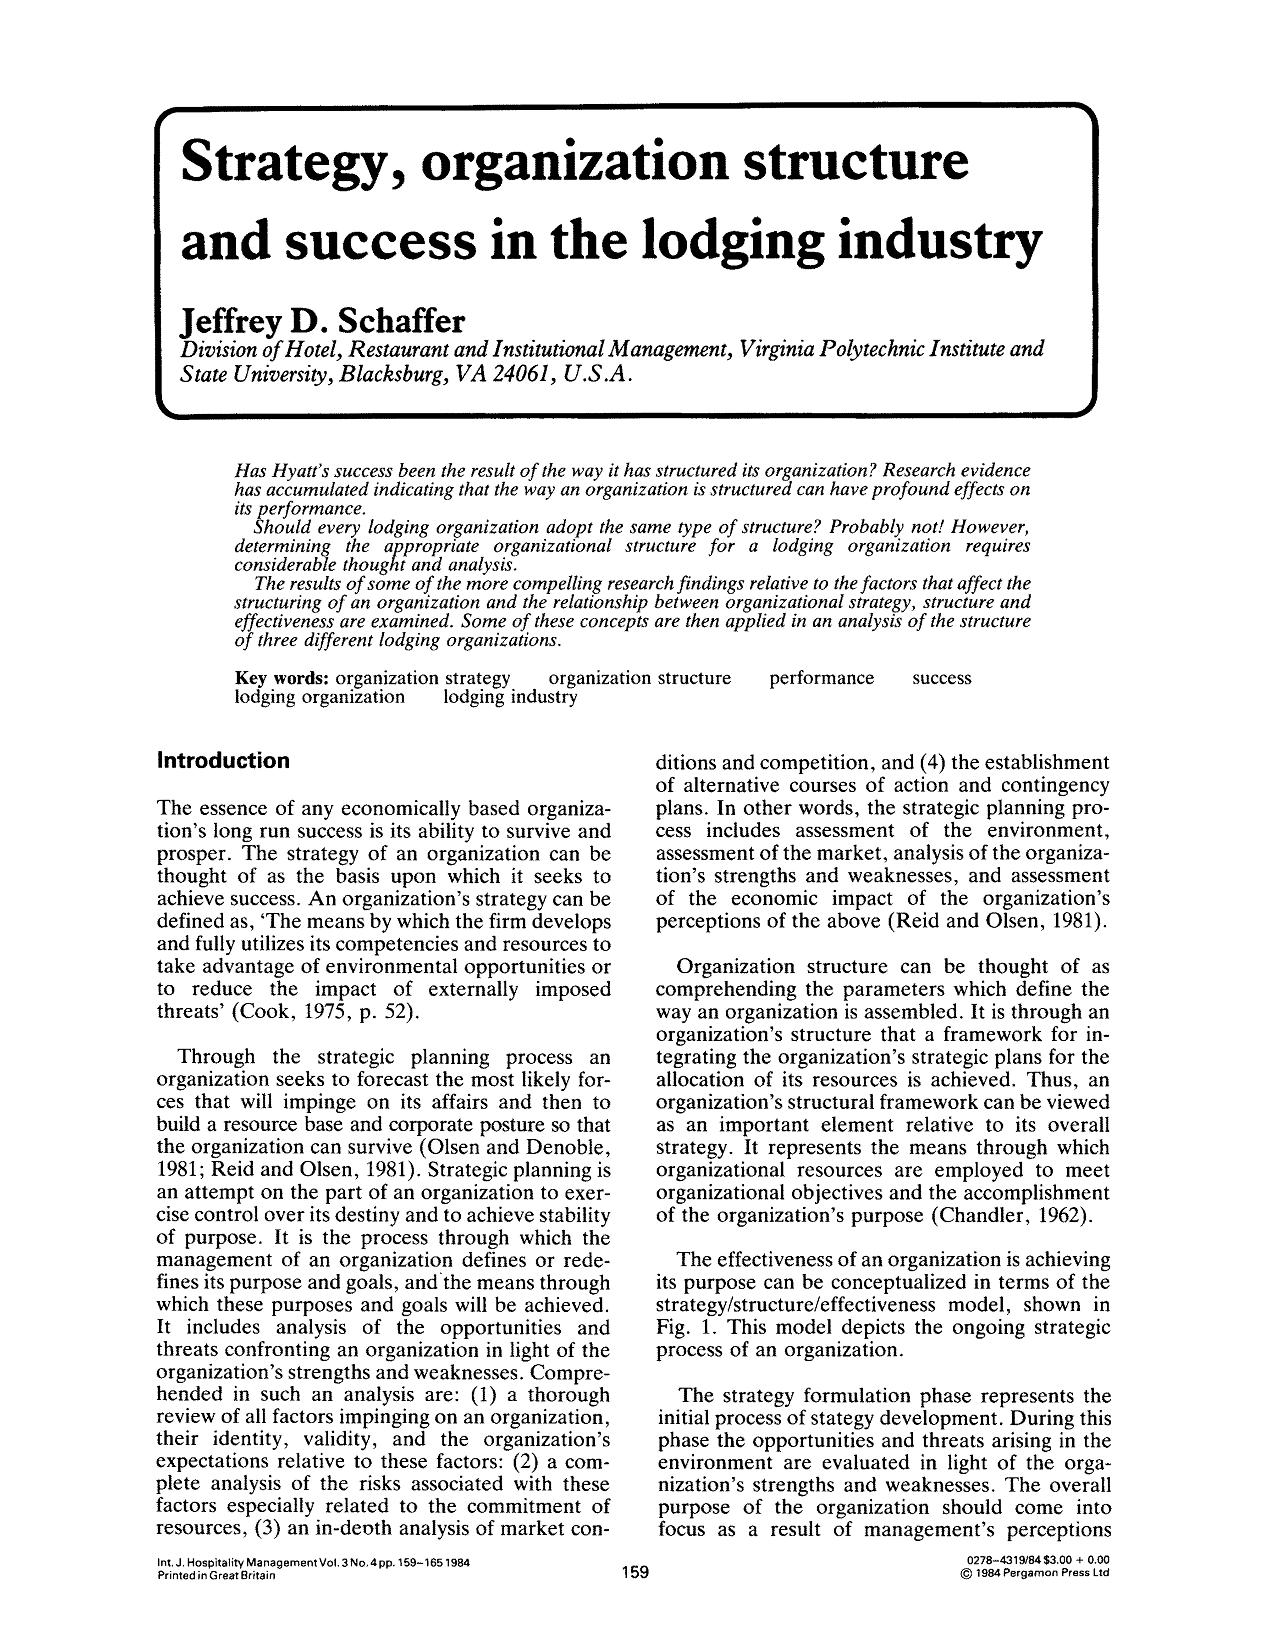 Strategy, organization structure and success in the lodging industry 6